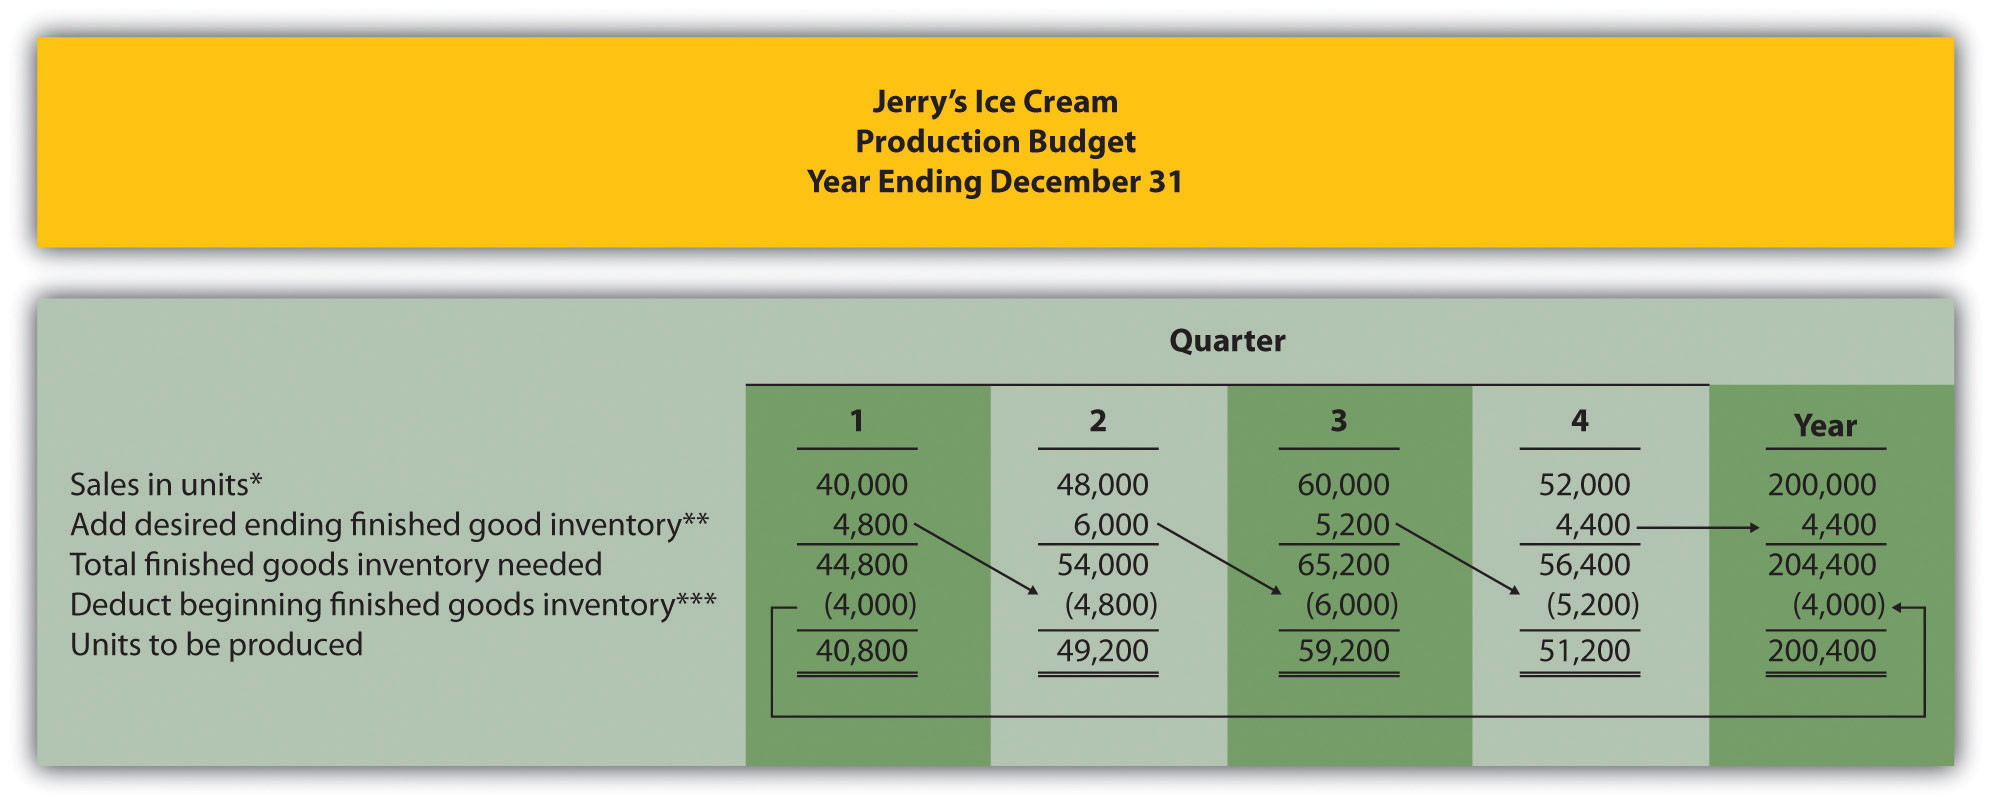 Figure 9.4 Production Budget for Jerry's Ice Cream